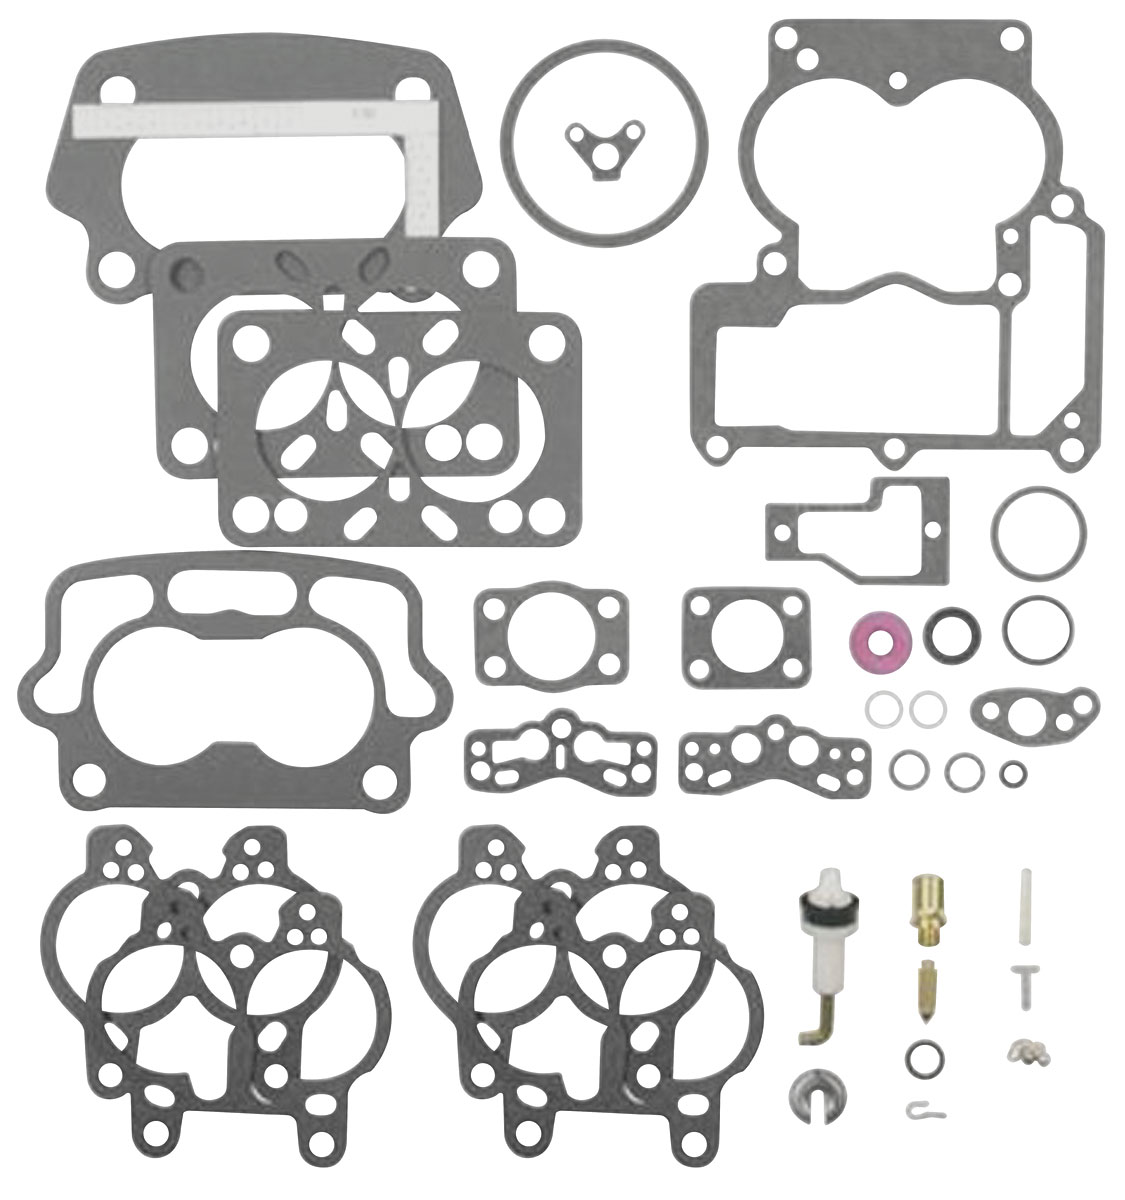 Gto Carburetor Rebuild Kit Tri Power Center Carburetor